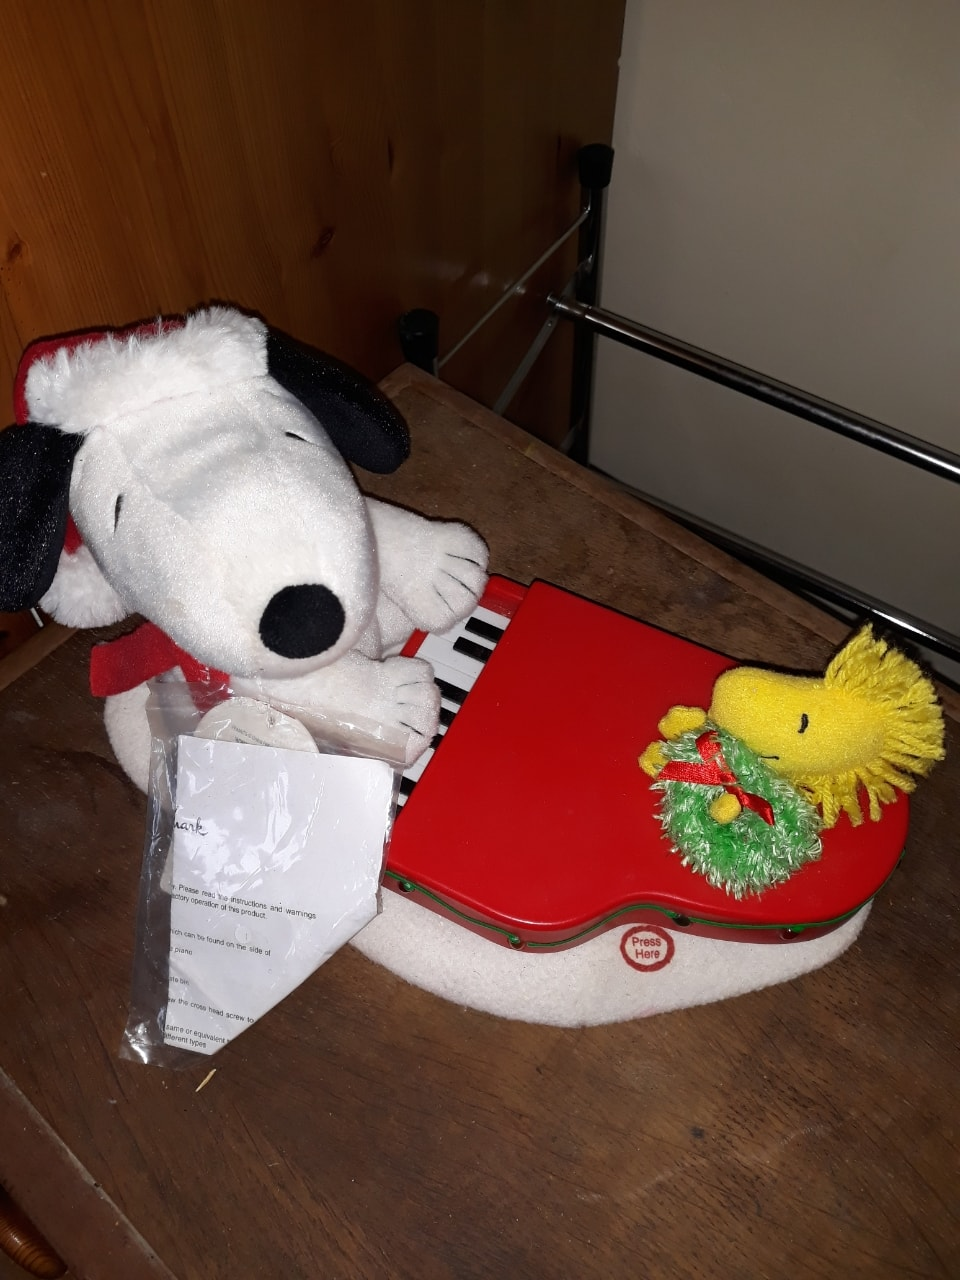 Snoopy ornament - not working!